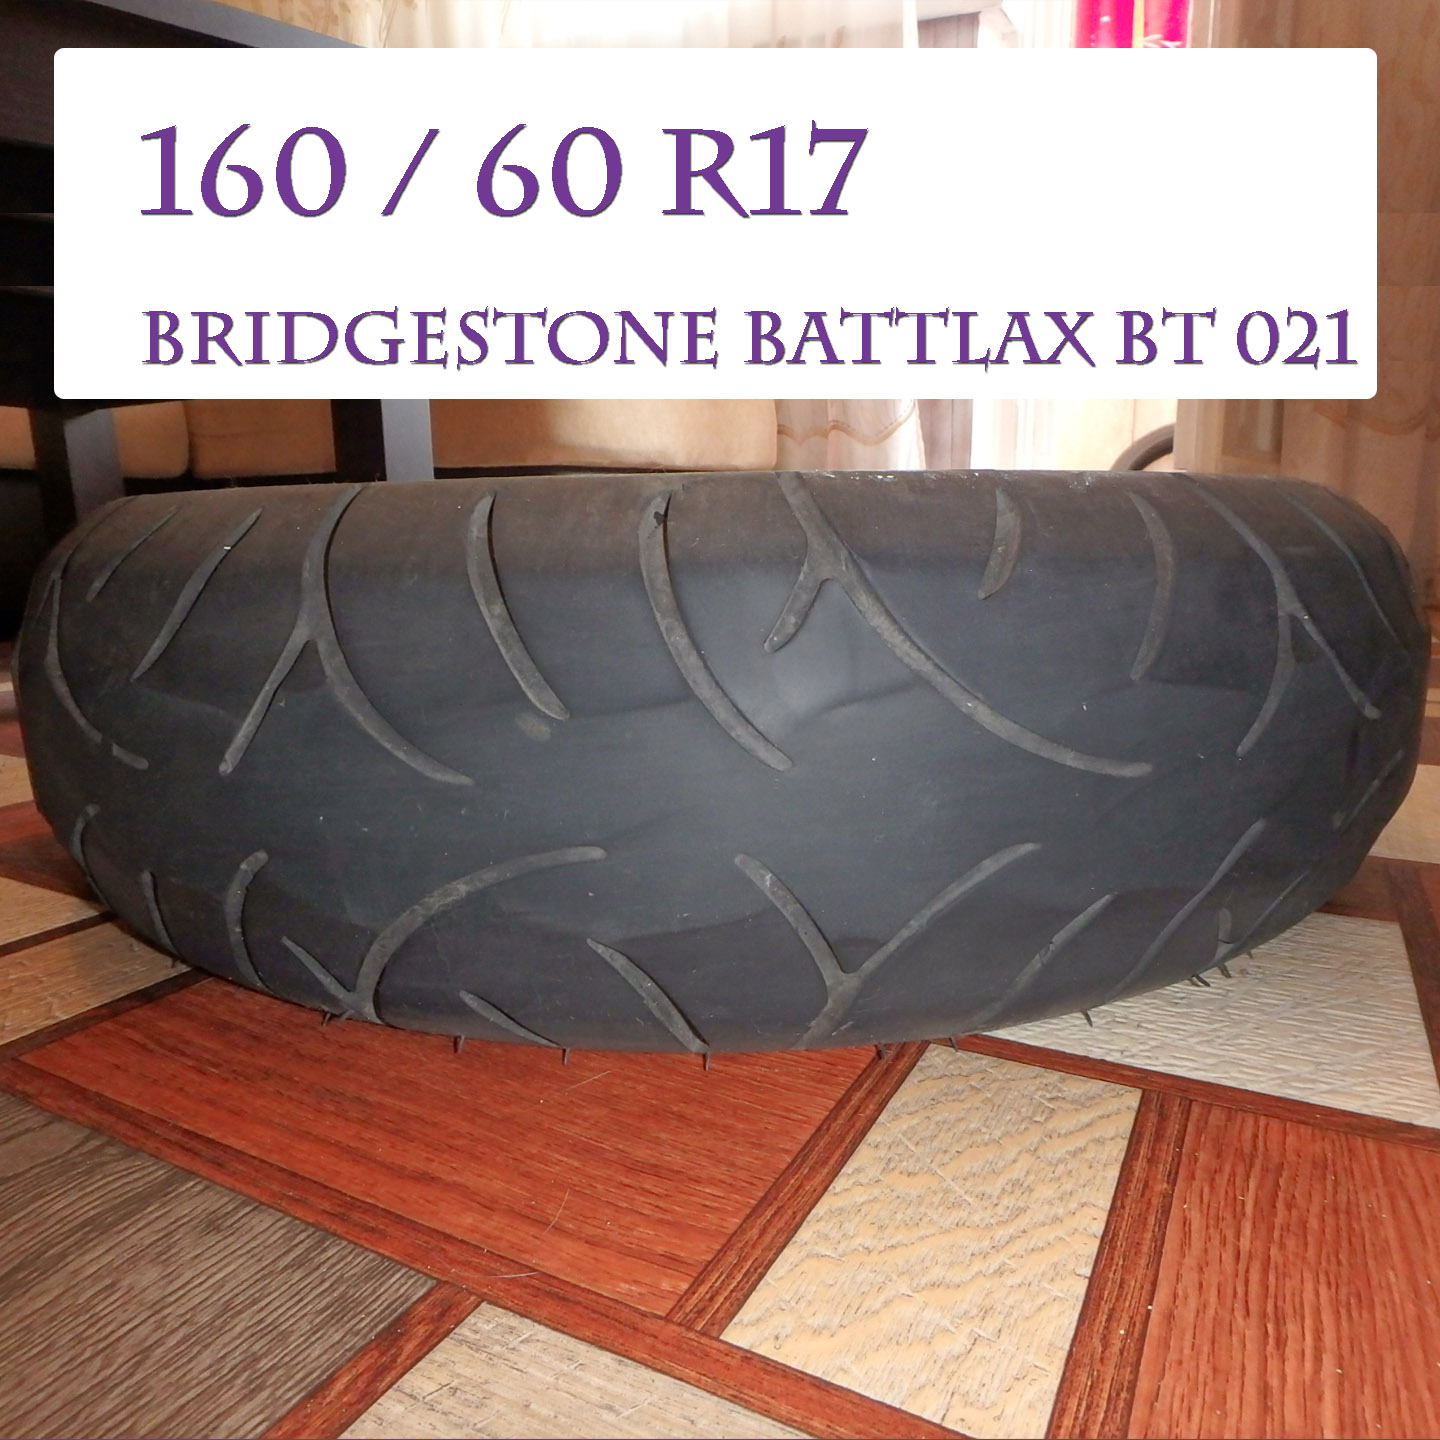 Bridgestone Battlax bt 021 (160 60 R17)